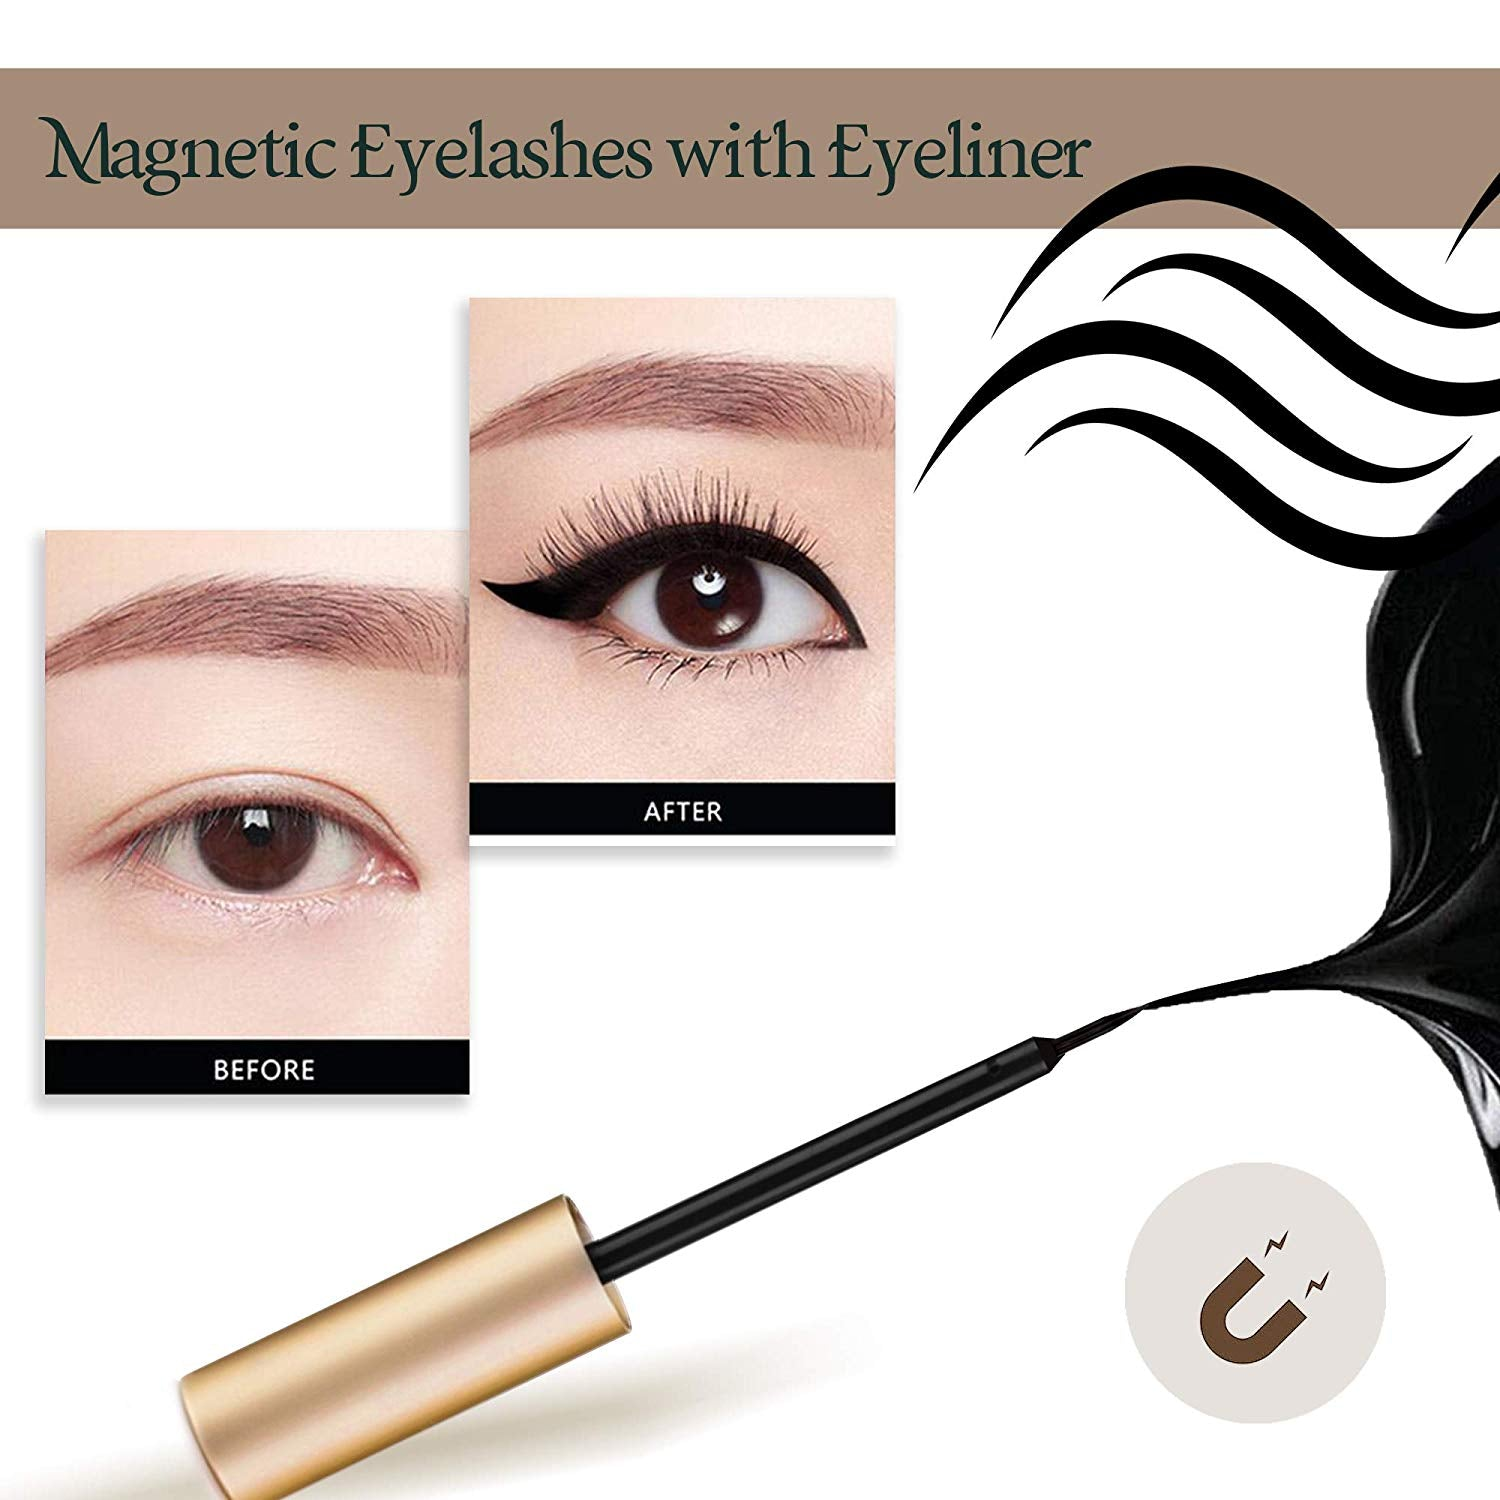 Arishine False Lashes, Magnetic Eyeliner and Lashes Kit Online - Arishinebeauty.com